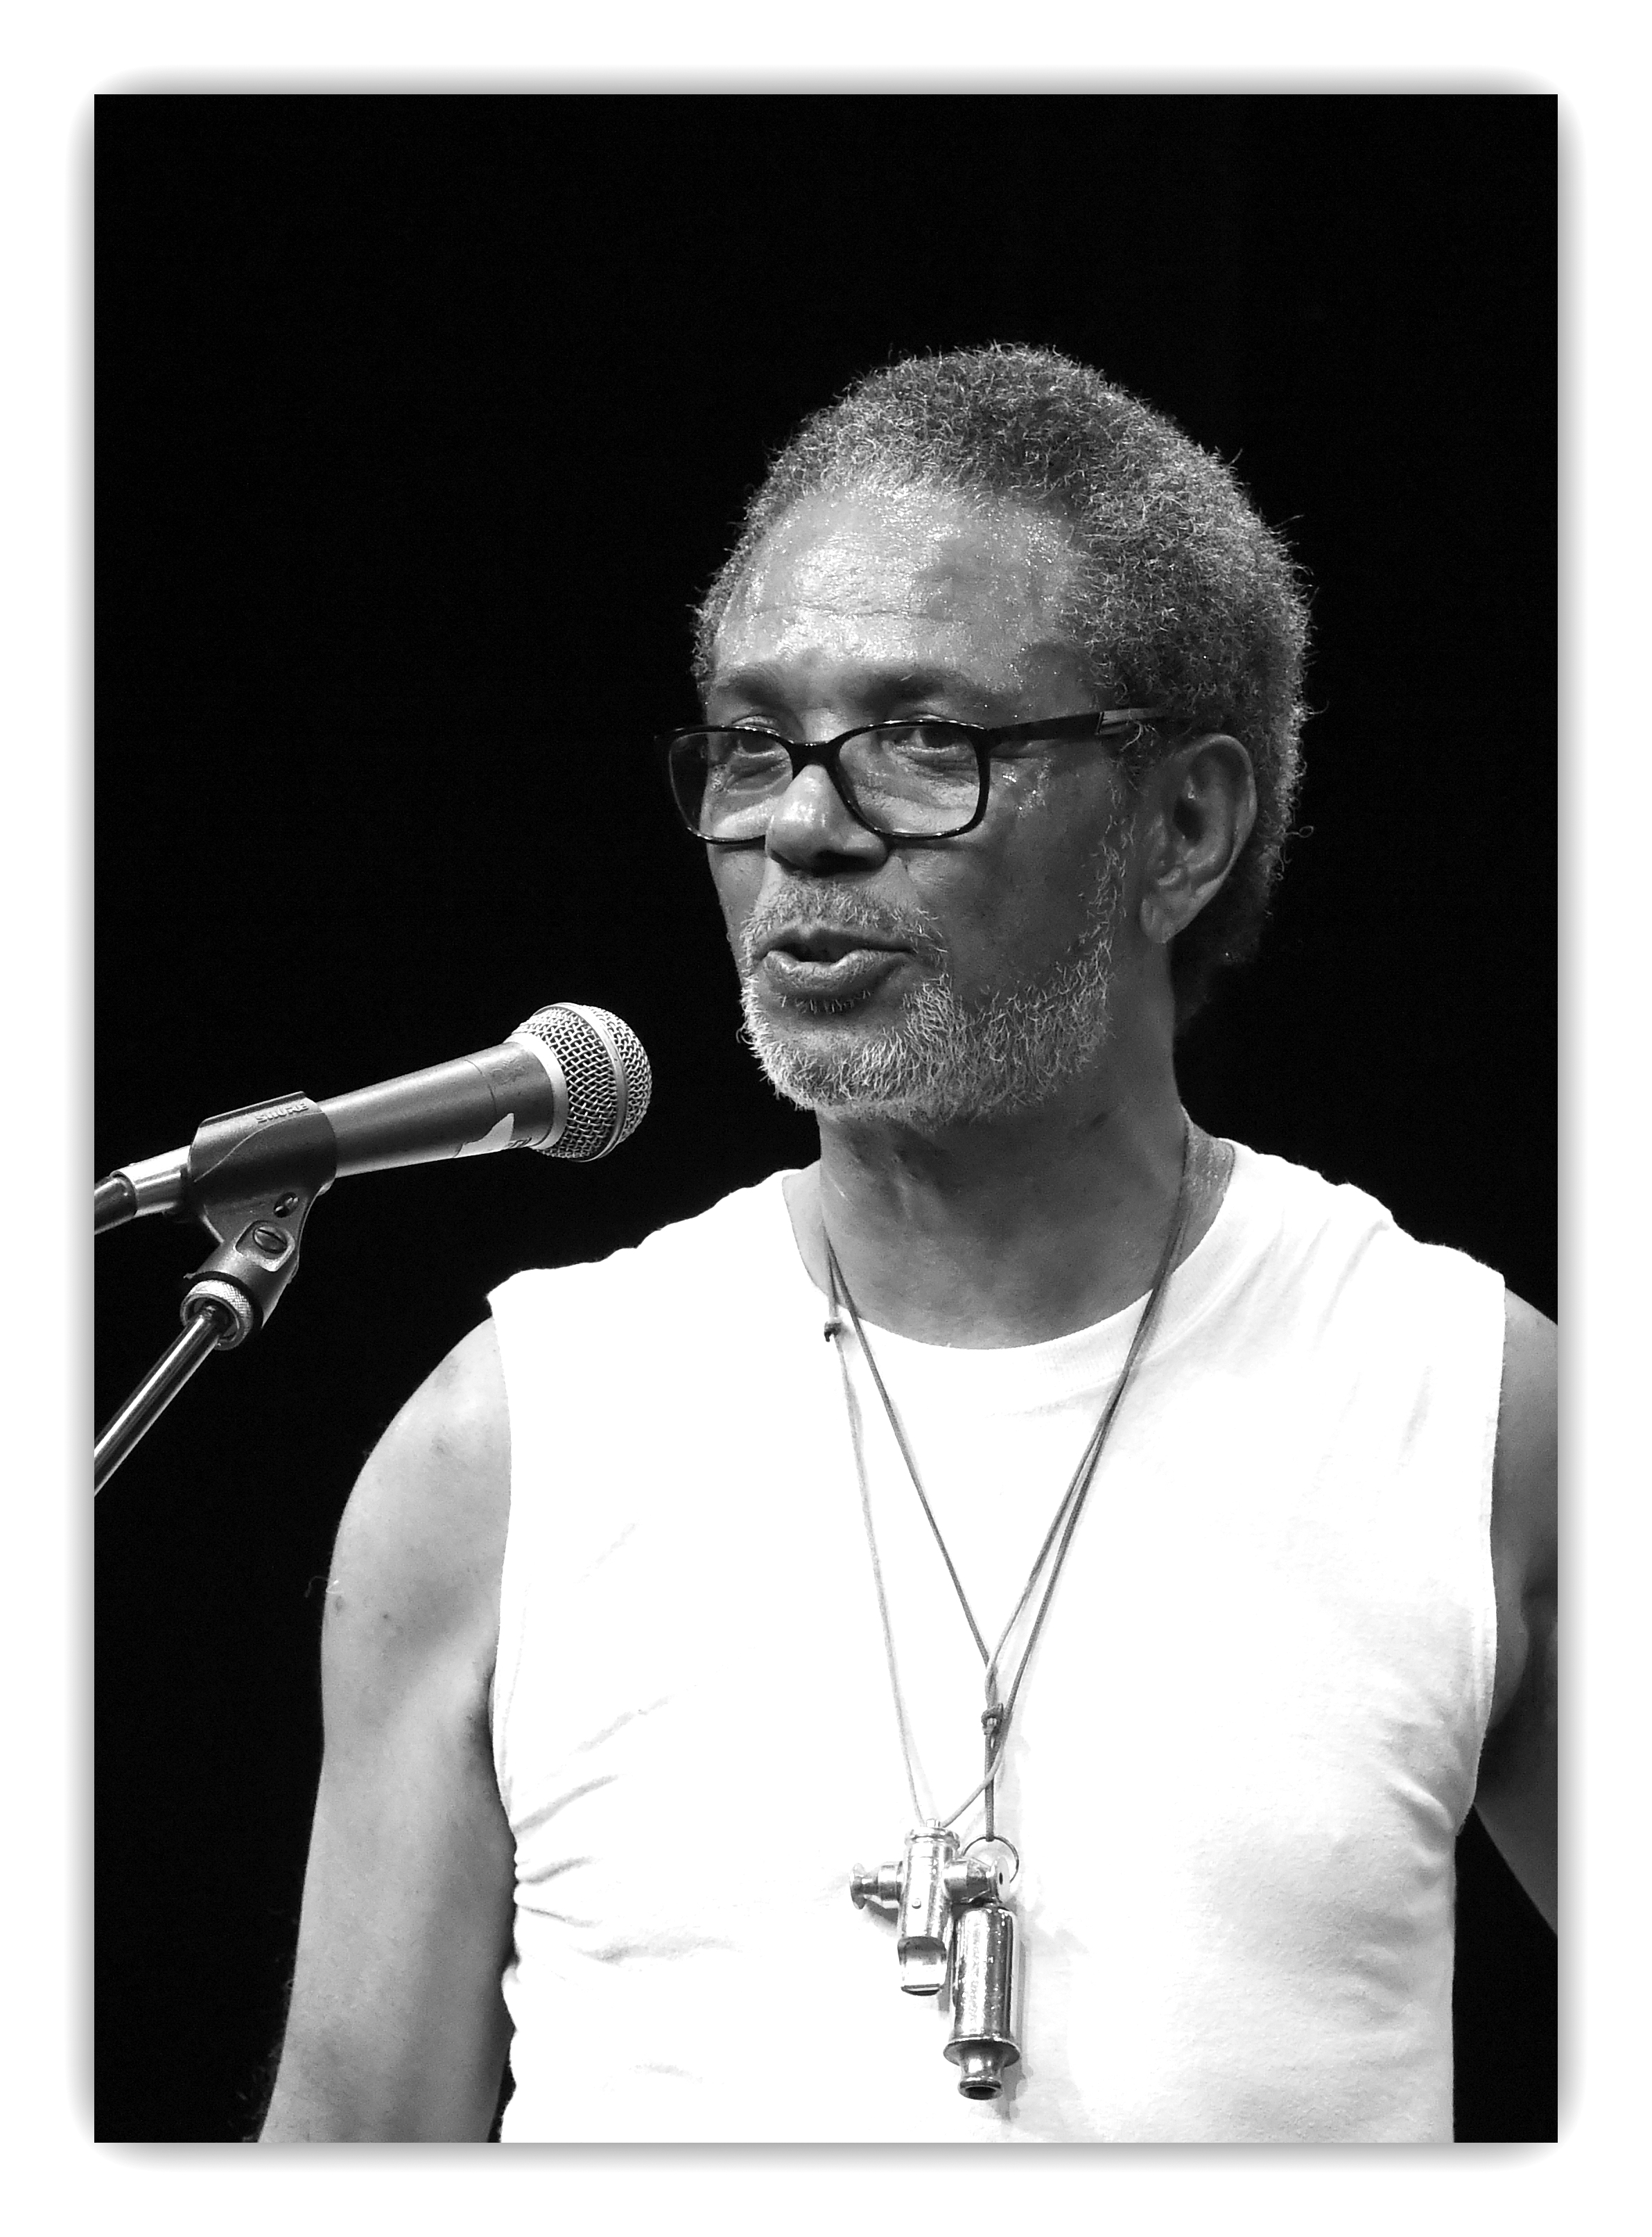 "Harold Ray Brown  Is a founding member of the foundation as well as a founding member of WAR, an iconic American funk band in the 1970s and 2000s. Harold had a number of roles over the years, acting as drummer, percussion, vocalist, and bandleader.  Brown is the oldest of six children, and the only one in his family to pursue music. Beginning with the congas, Brown progressed to violin while in elementary school, and took up drums in junior high. He turned down a full scholarship to Valparaiso University in 1964 in order to pursue music.  Brown was rooted in the very beginnings of War. In 1962, he met Howard E. Scott at the Cozy Lounge in Long Beach, California. They were fifteen years old at the time and were hired to play in a band for a casual gig.  Brown started a band called the Creators in 1963 in Long Beach while going to Long Beach Polytechnic High School, to play for high school sock hops and car shows. Then in 1967, toward the end of the Vietnam war, he and Howard Scott restarted the band with a new name, Night Shift. Brown had been working as a machinist on the Night Shift. In February 1969 while playing a show at the Rag Doll Night Club in North Hollywood, California Eric Burdon and Lee Oskar jammed with the Night Shift. The band changed its name to War.  Brown left the band to attend college in 1983, majoring in computer science, with a minor in music. He then moved to New Orleans in 1986. In 2001, Brown went back to school to pursue his lifelong hobby; he is now a historian and professional tour guide in New Orleans, and has recently formed a new band called the Lowrider Band with three of the other original members of War: Howard E. Scott, Morris ""BB"" Dickerson, and Lee Oskar.   Harold Ray Brown is a Founding Member in the StandUp4Music™ Foundation and works with inner-city youth during the summer, to promote good citizenship through the art of fine drumming."